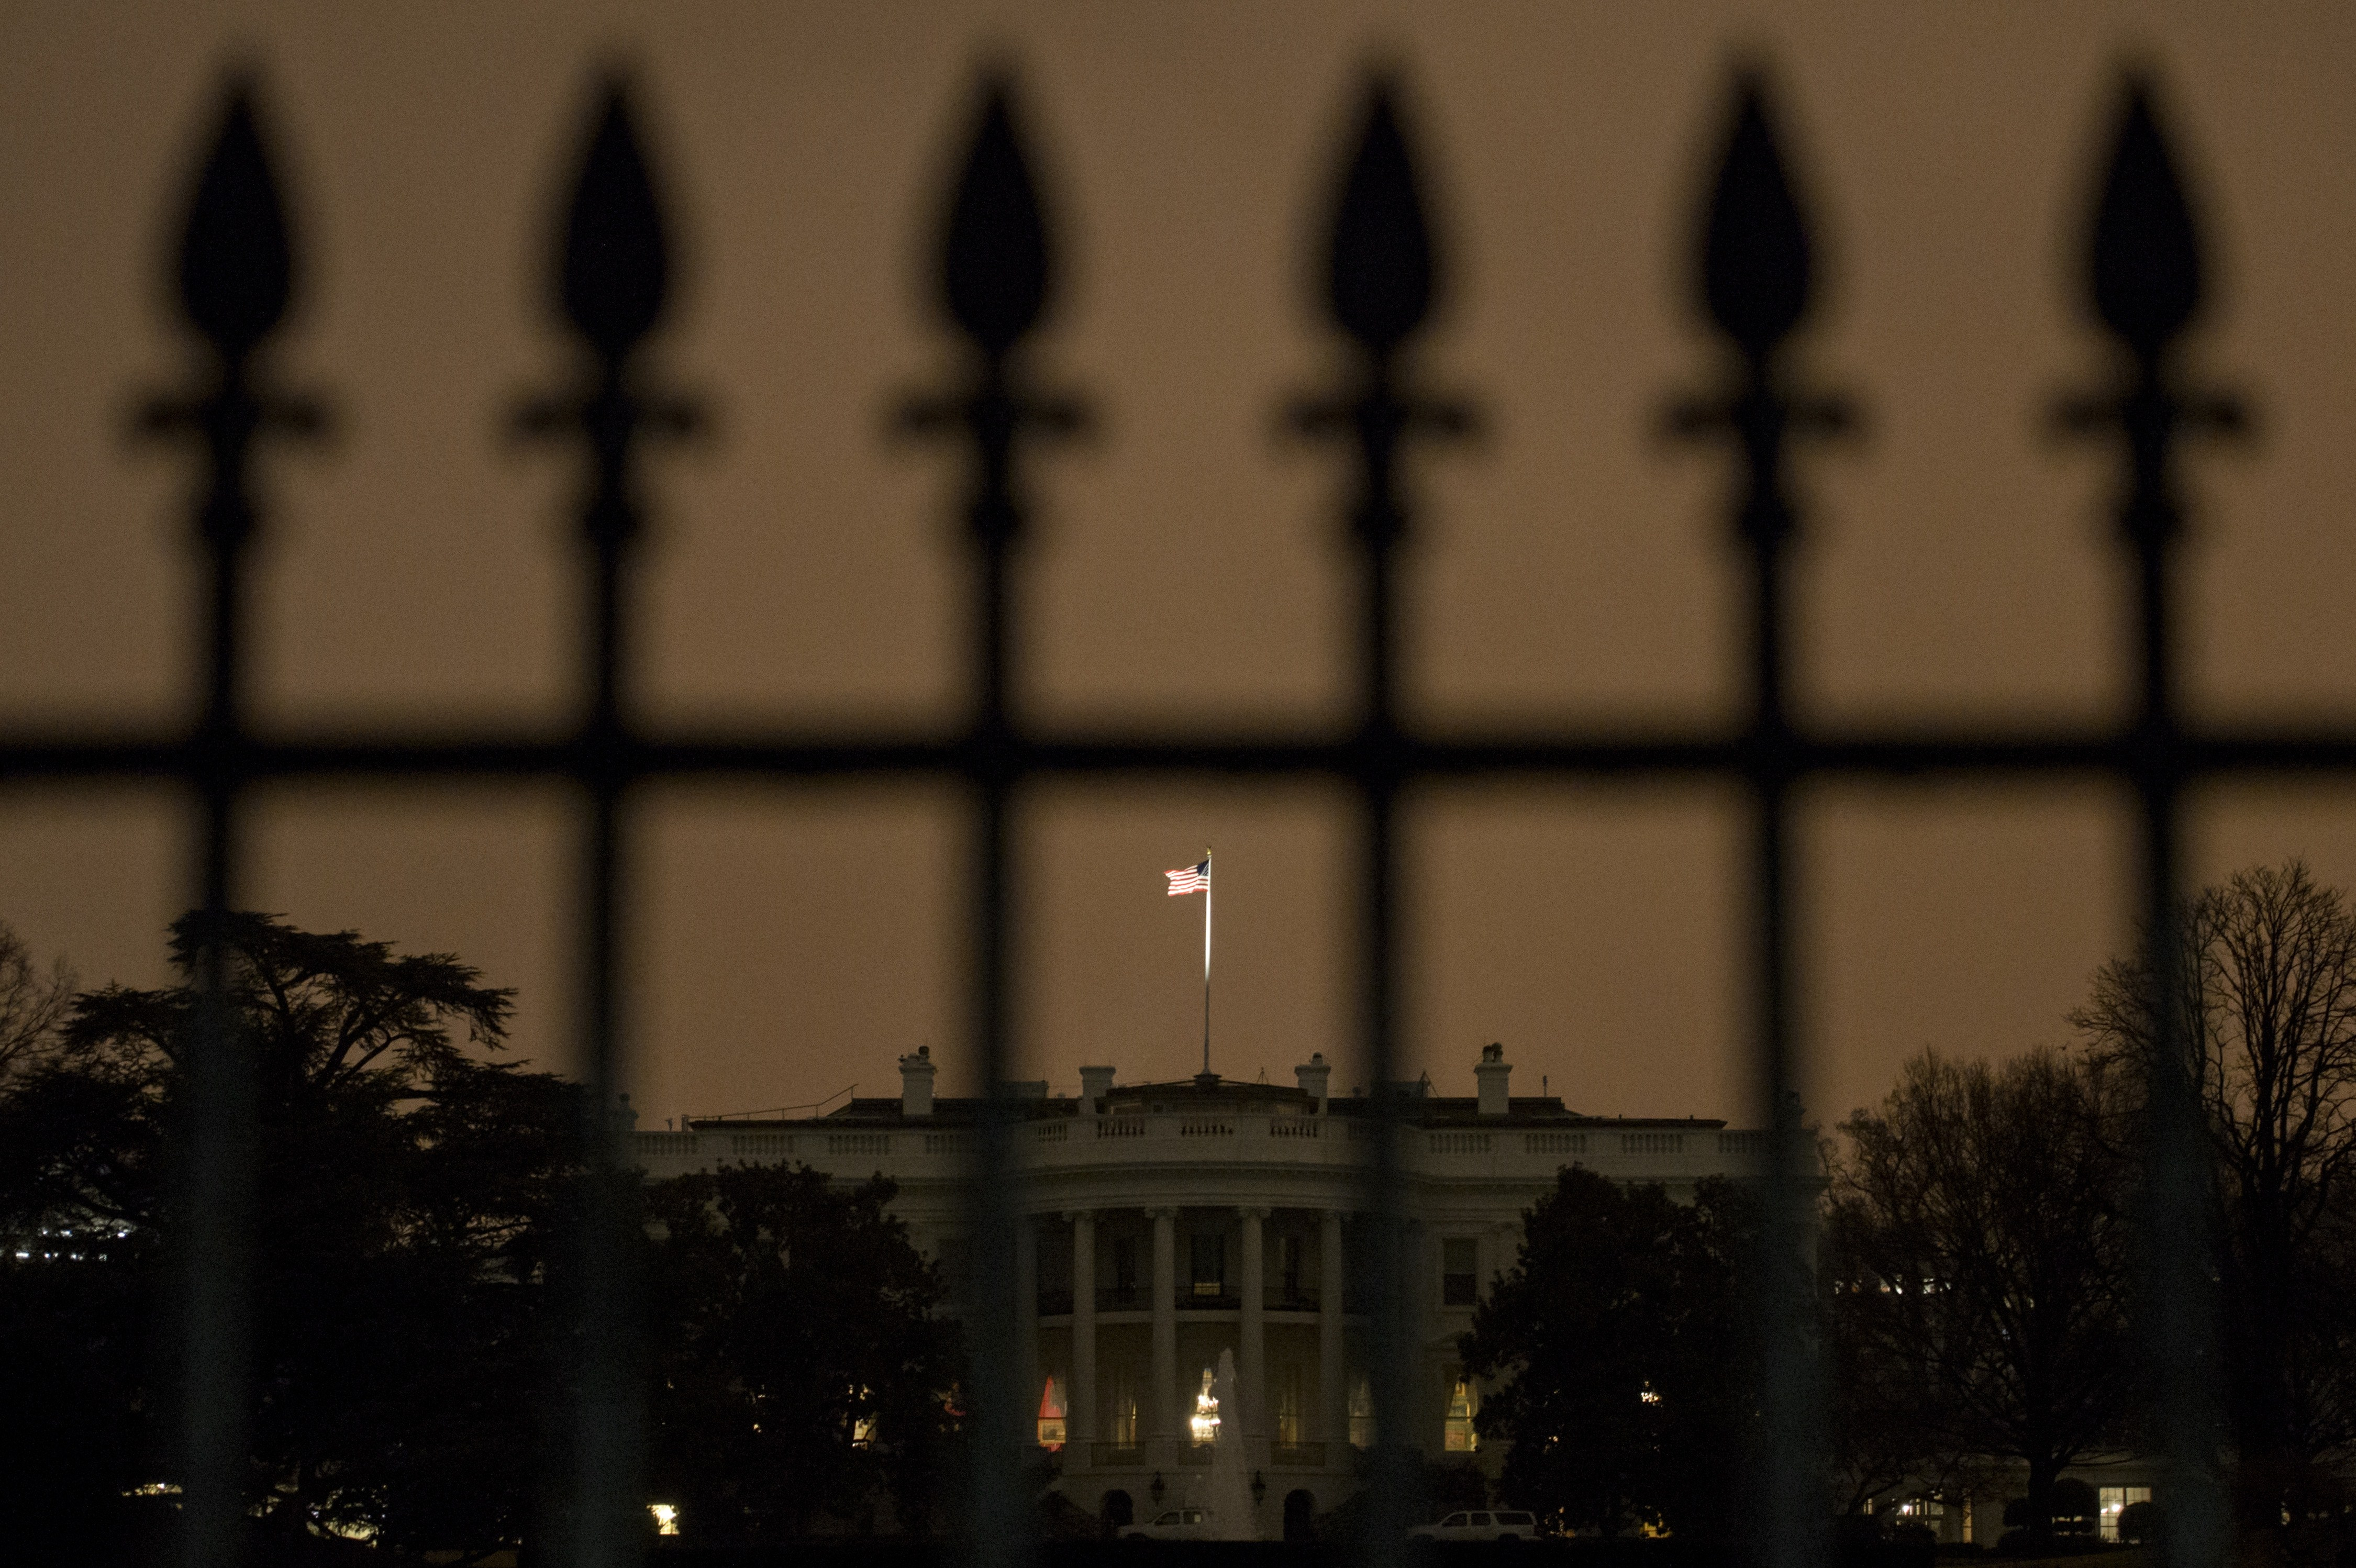 The south side of the White House is seen January 26, 2015 in Washington, D.C.